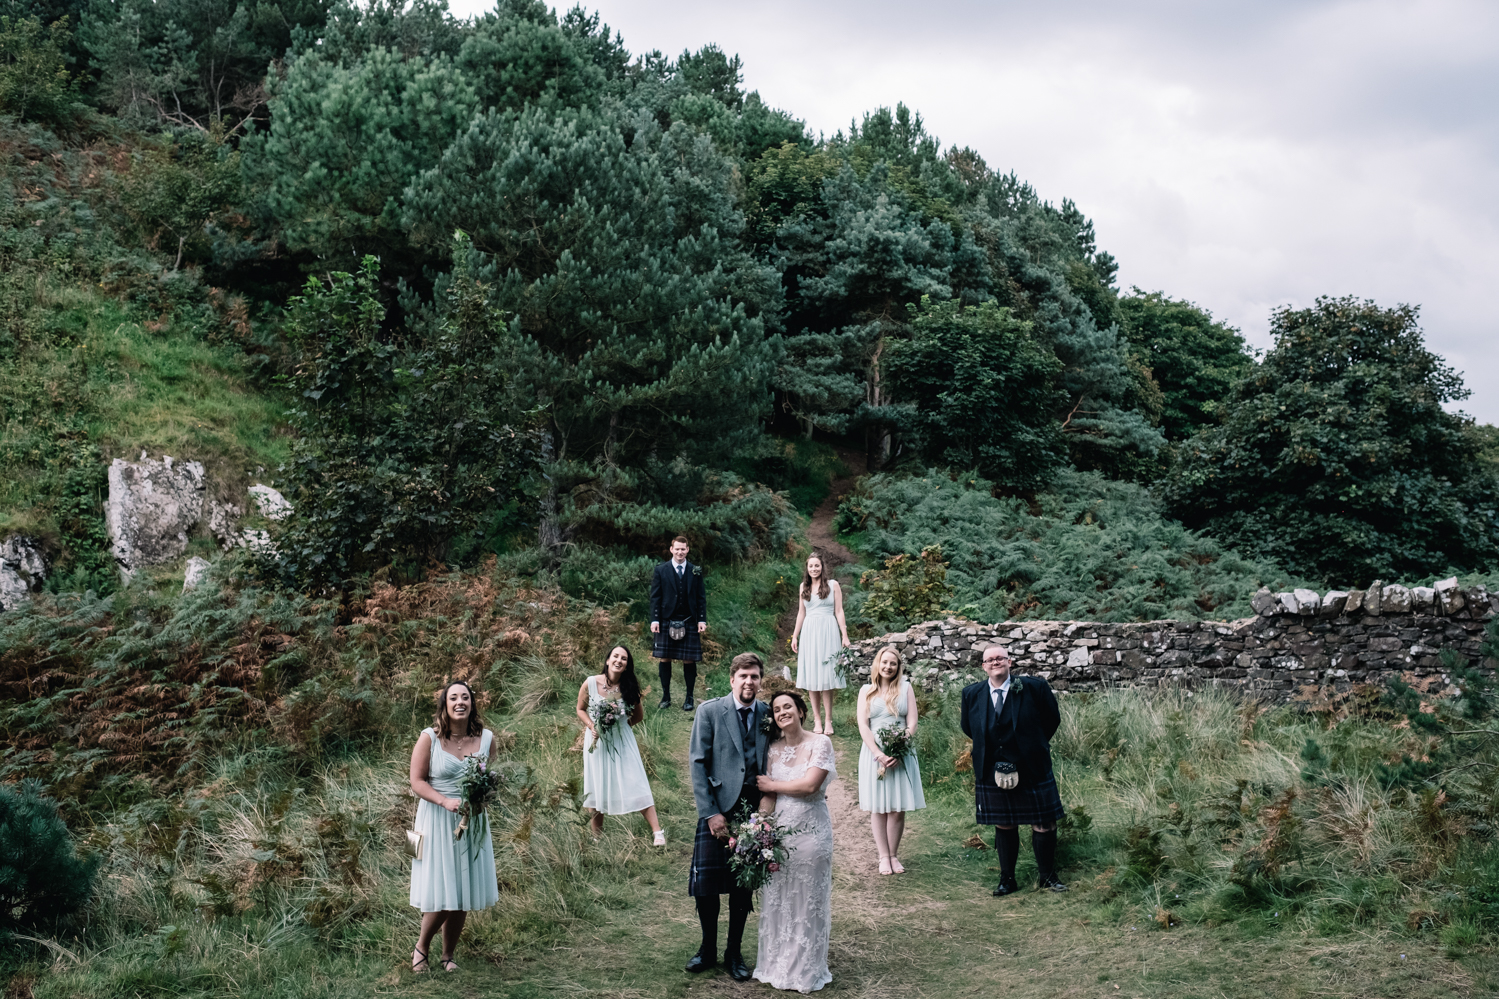 An unconventional bridal party group shot in a field.